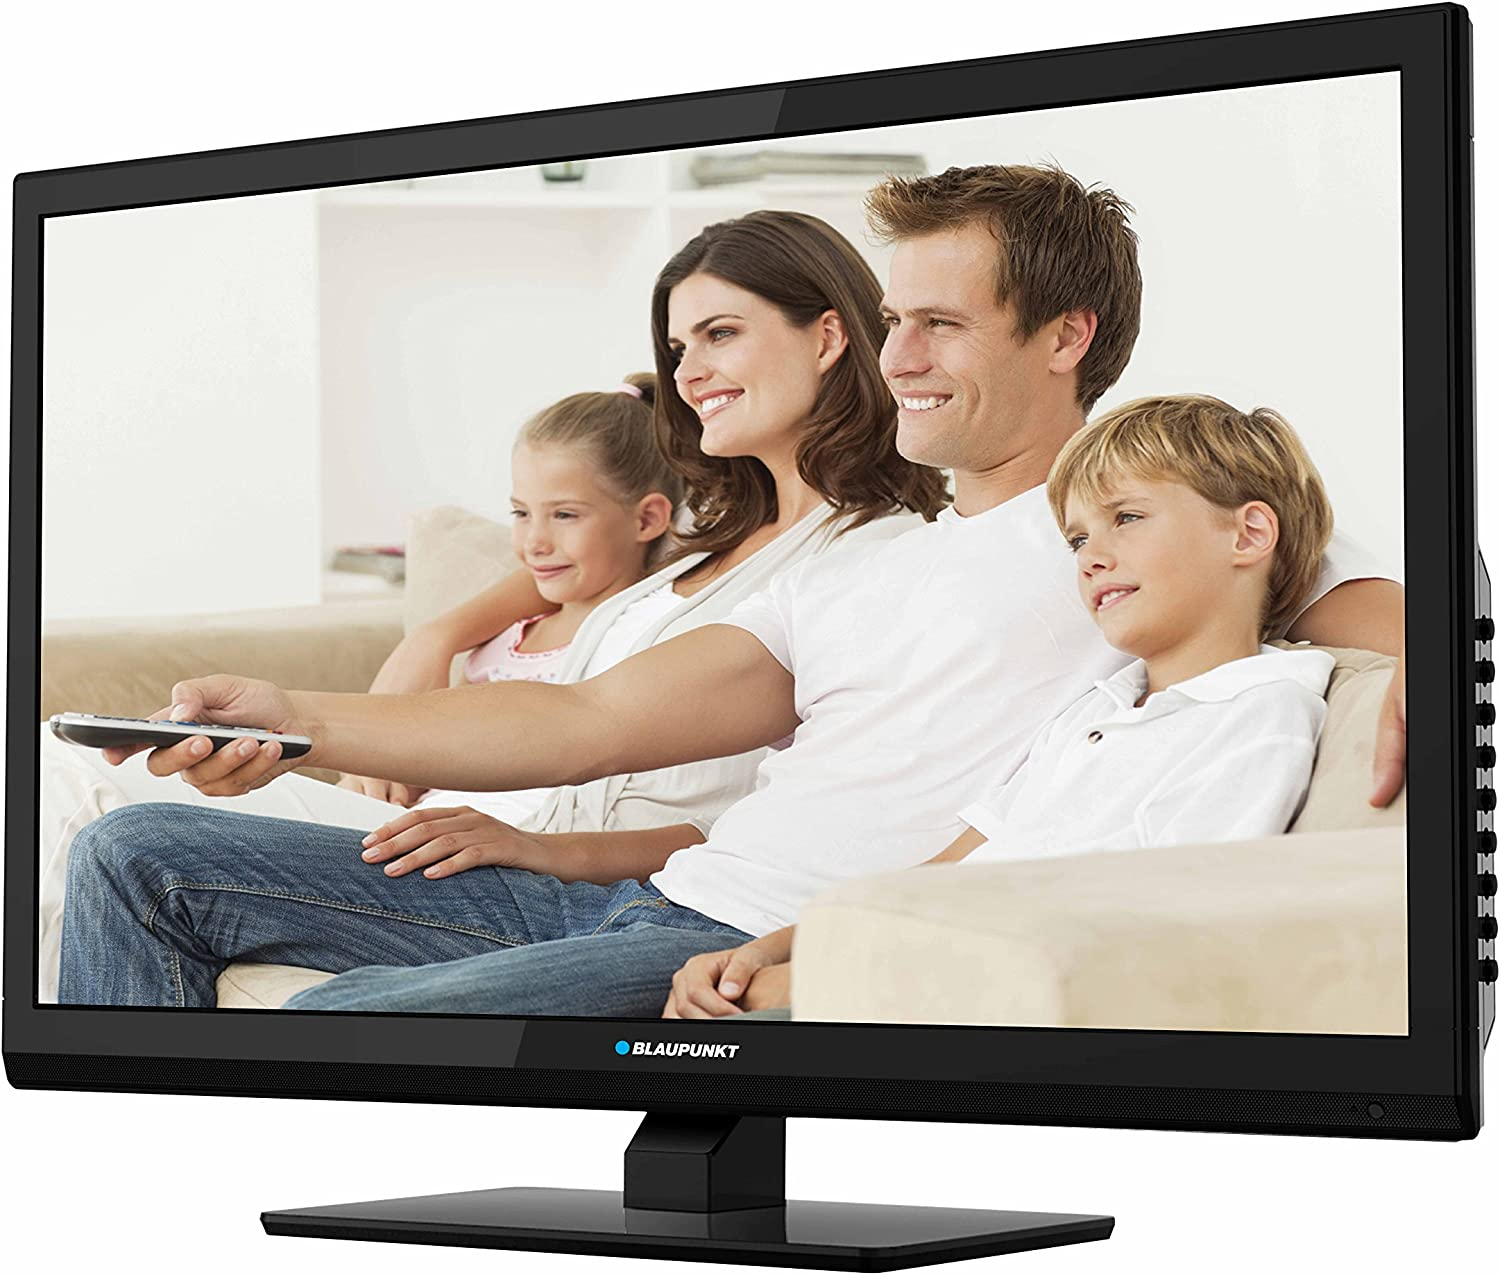 Blaupunkt 22-Inch Widescreen 1080p Full HD LED TV with DVD and Freeview: Amazon.es: Electrónica